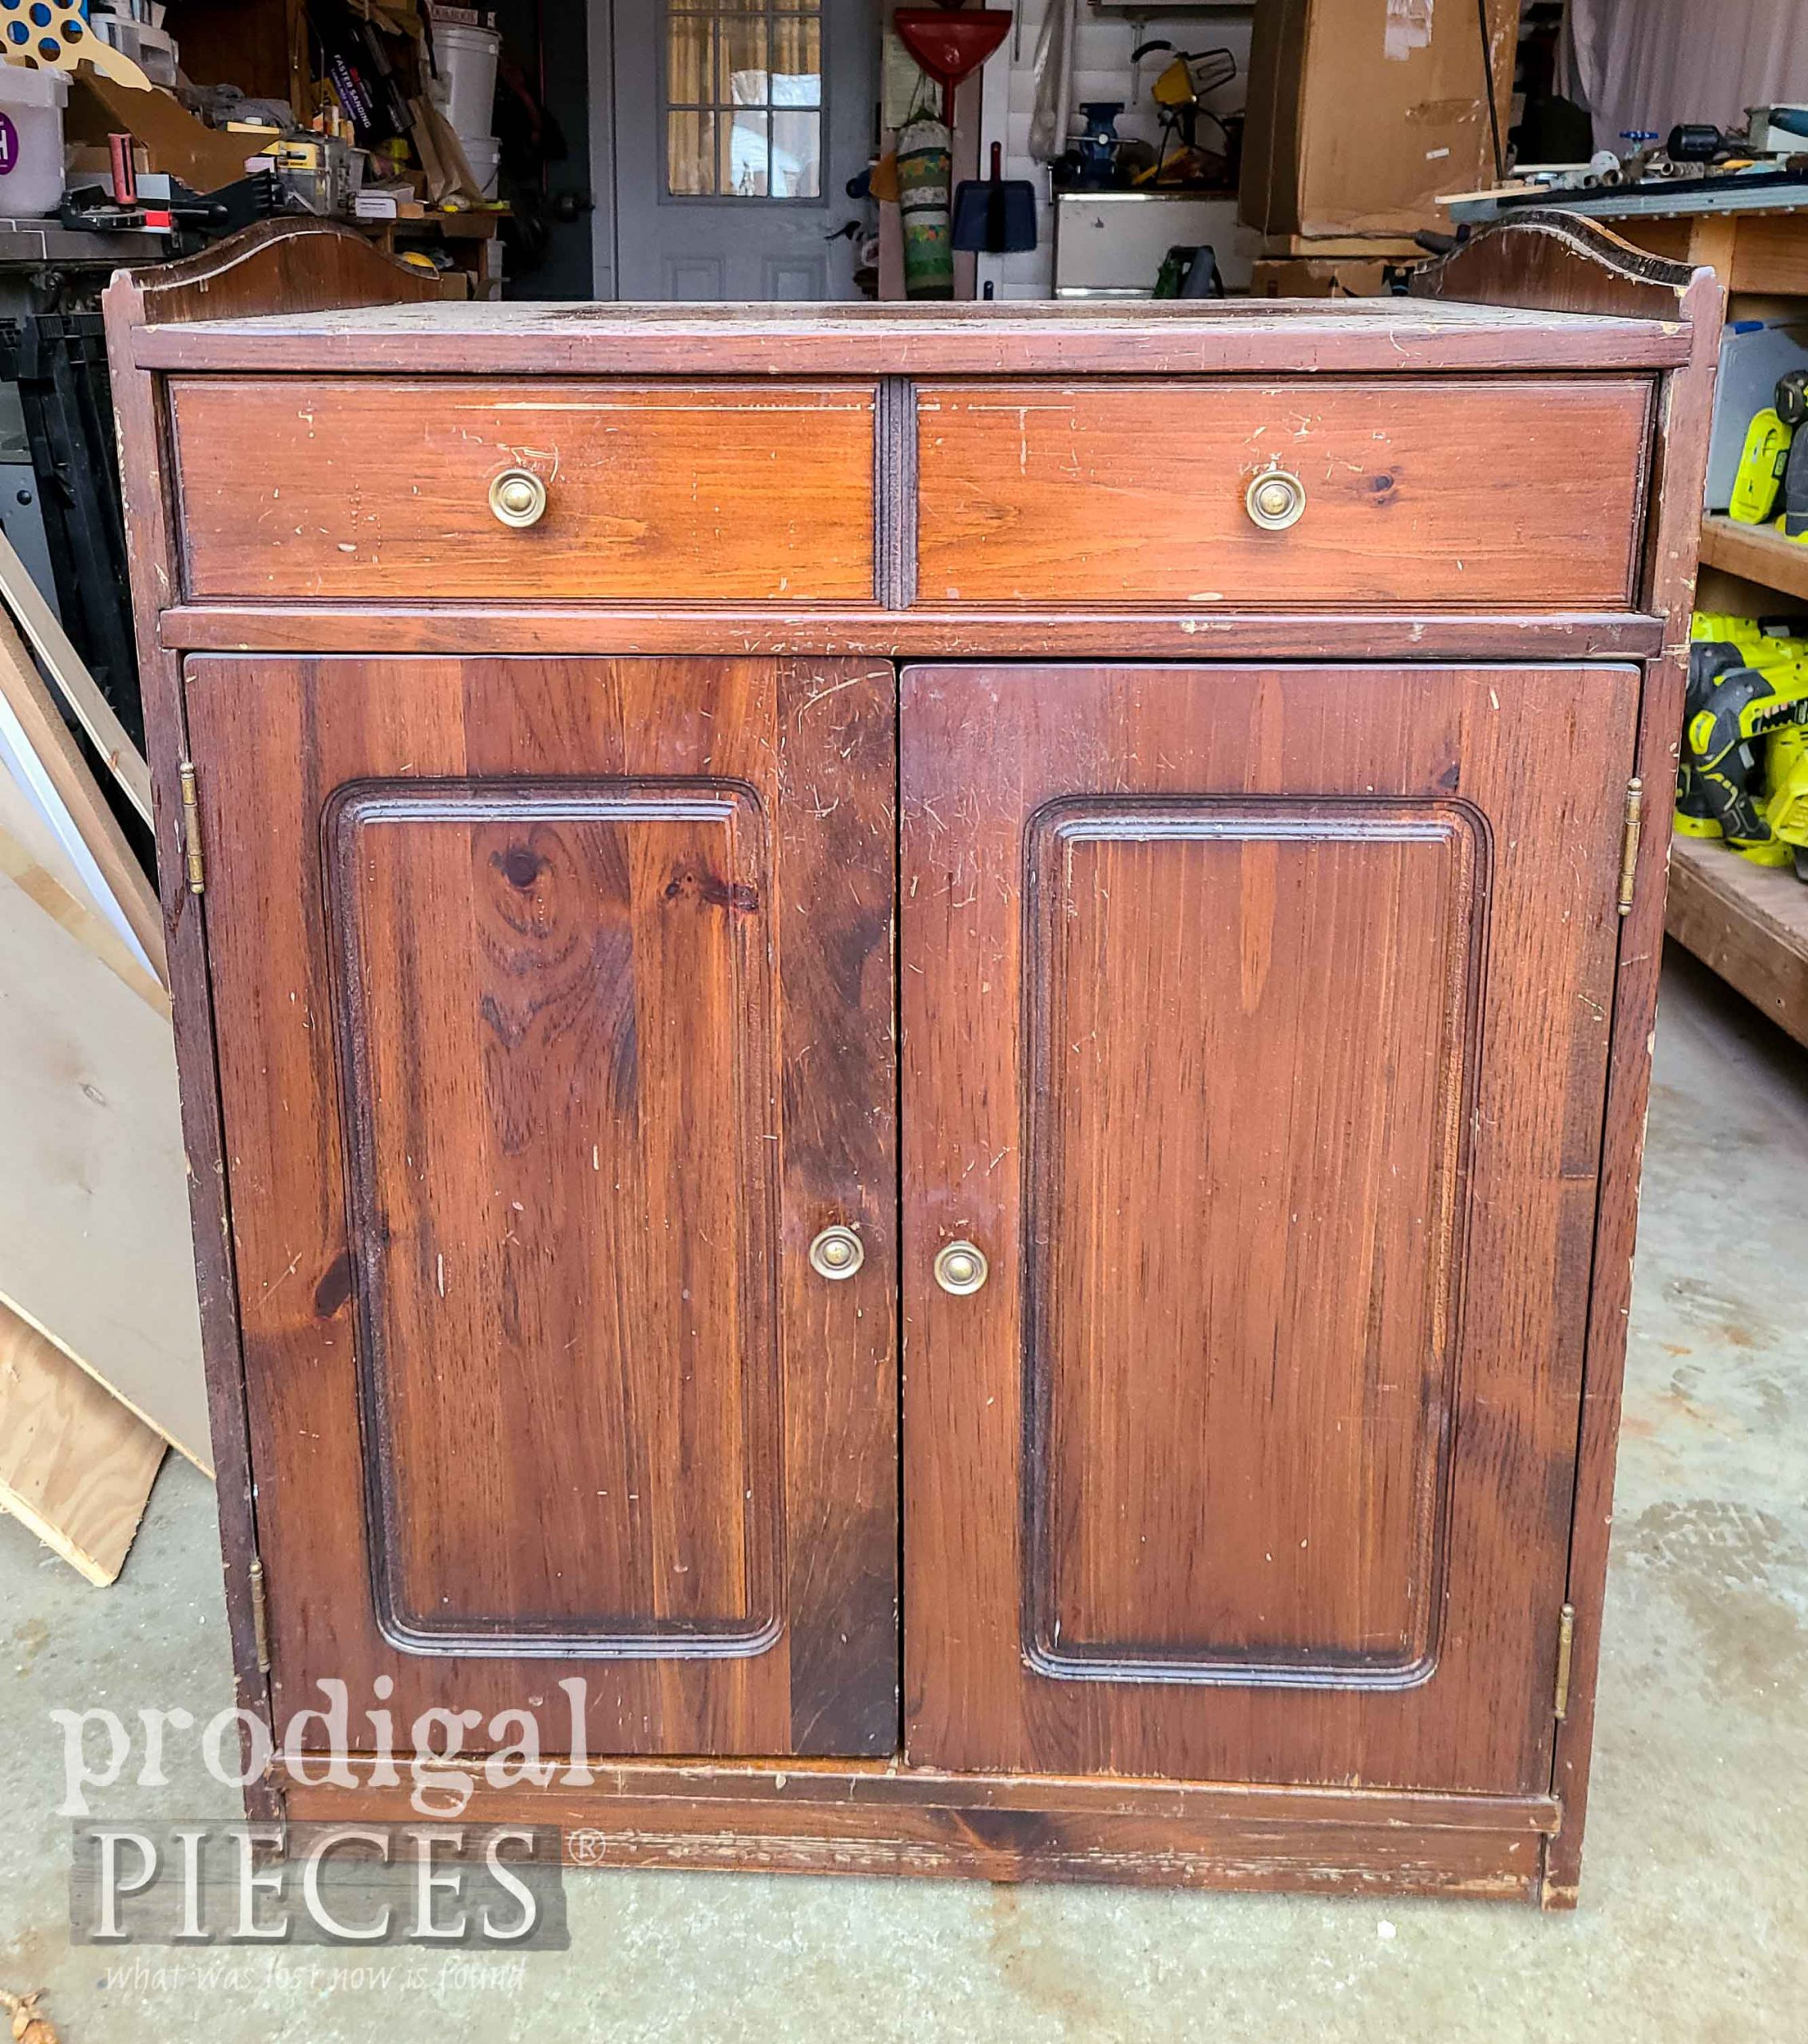 Baking Cabinet Before Makeover by Larissa of Prodigal Pieces | prodigalpieces.com #prodigalpieces